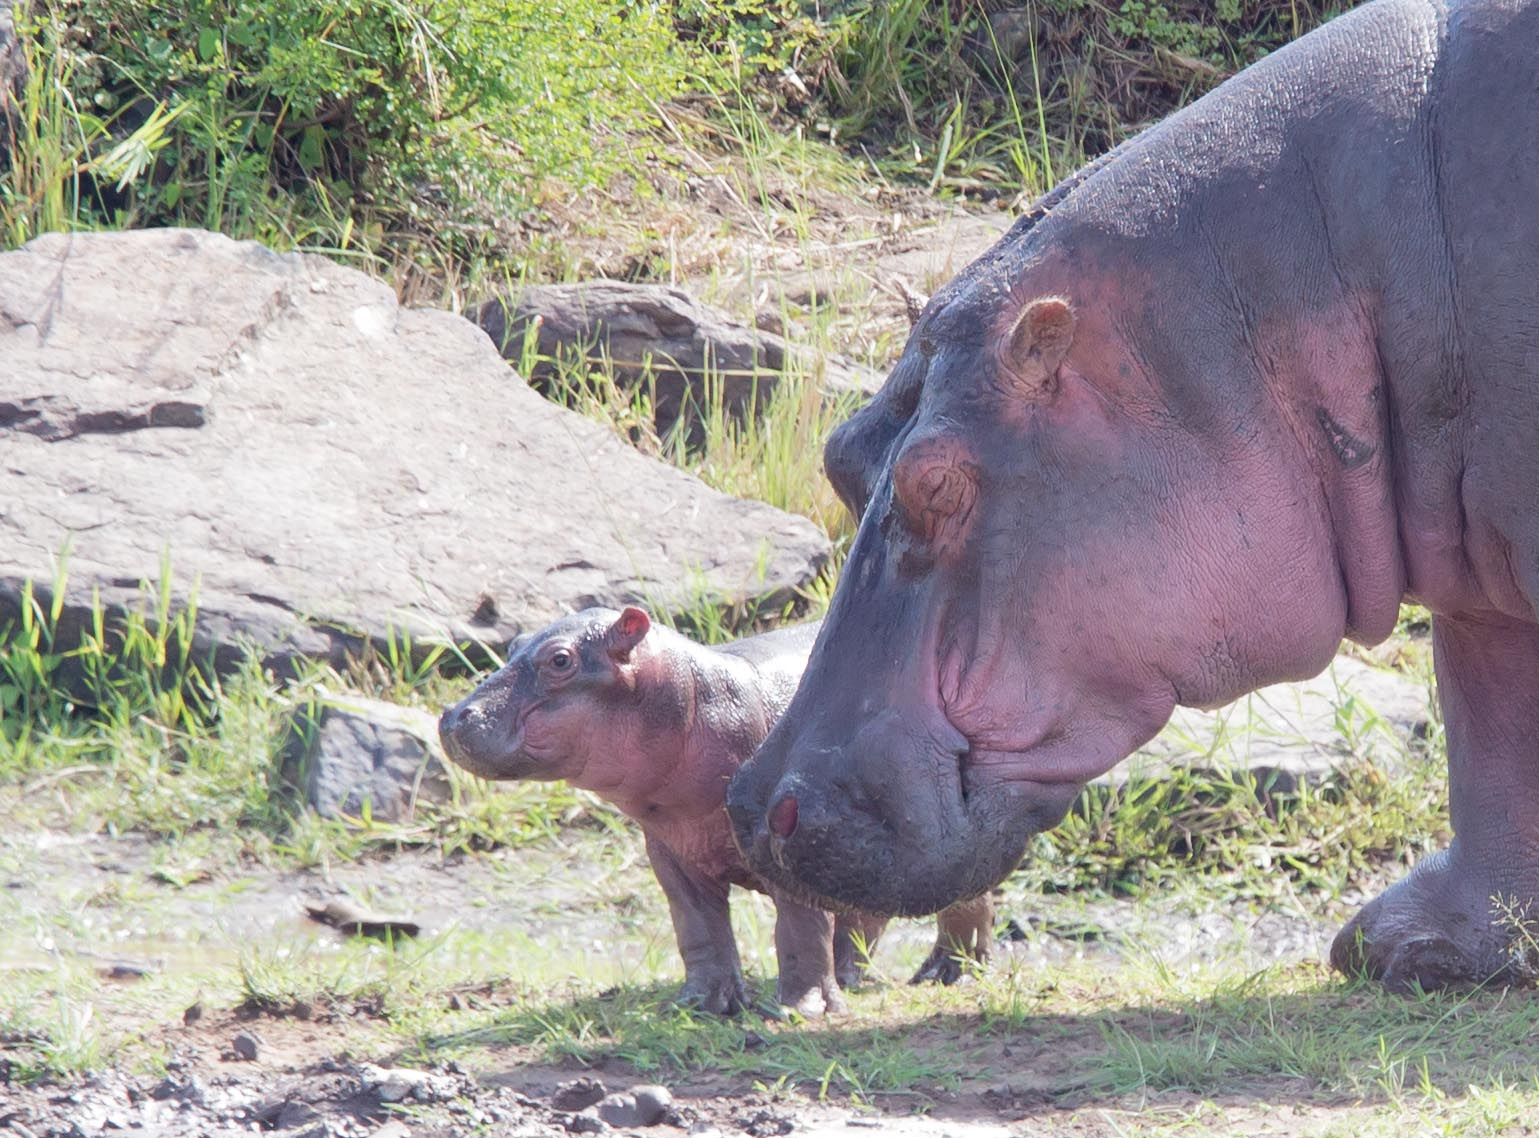 And a mother and baby dry out for a spell. How cute is this baby hippo??